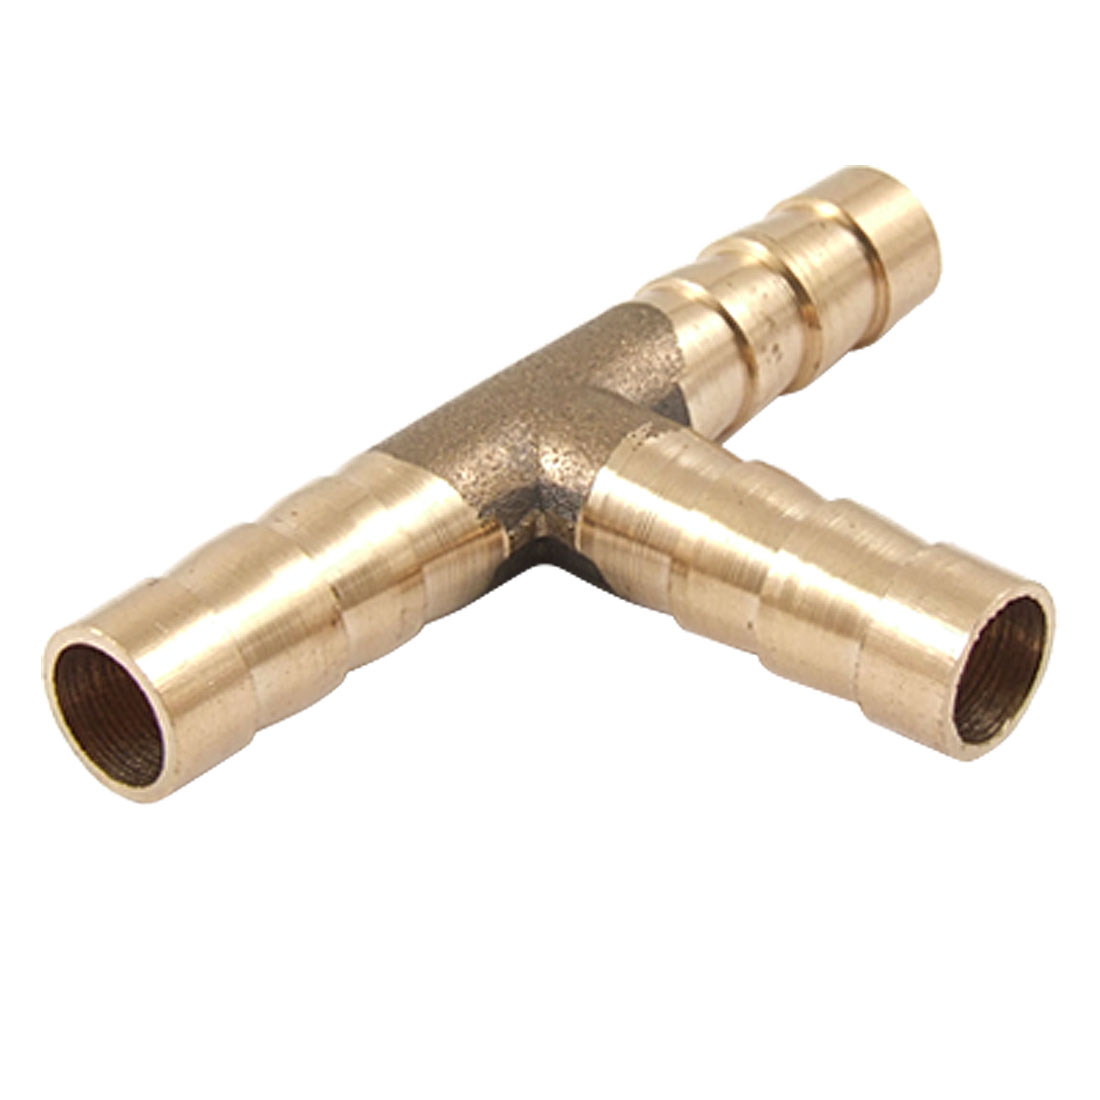 Brass 3 Way T Hose Barb Connector Adapter for Air Water Fuel Pipe